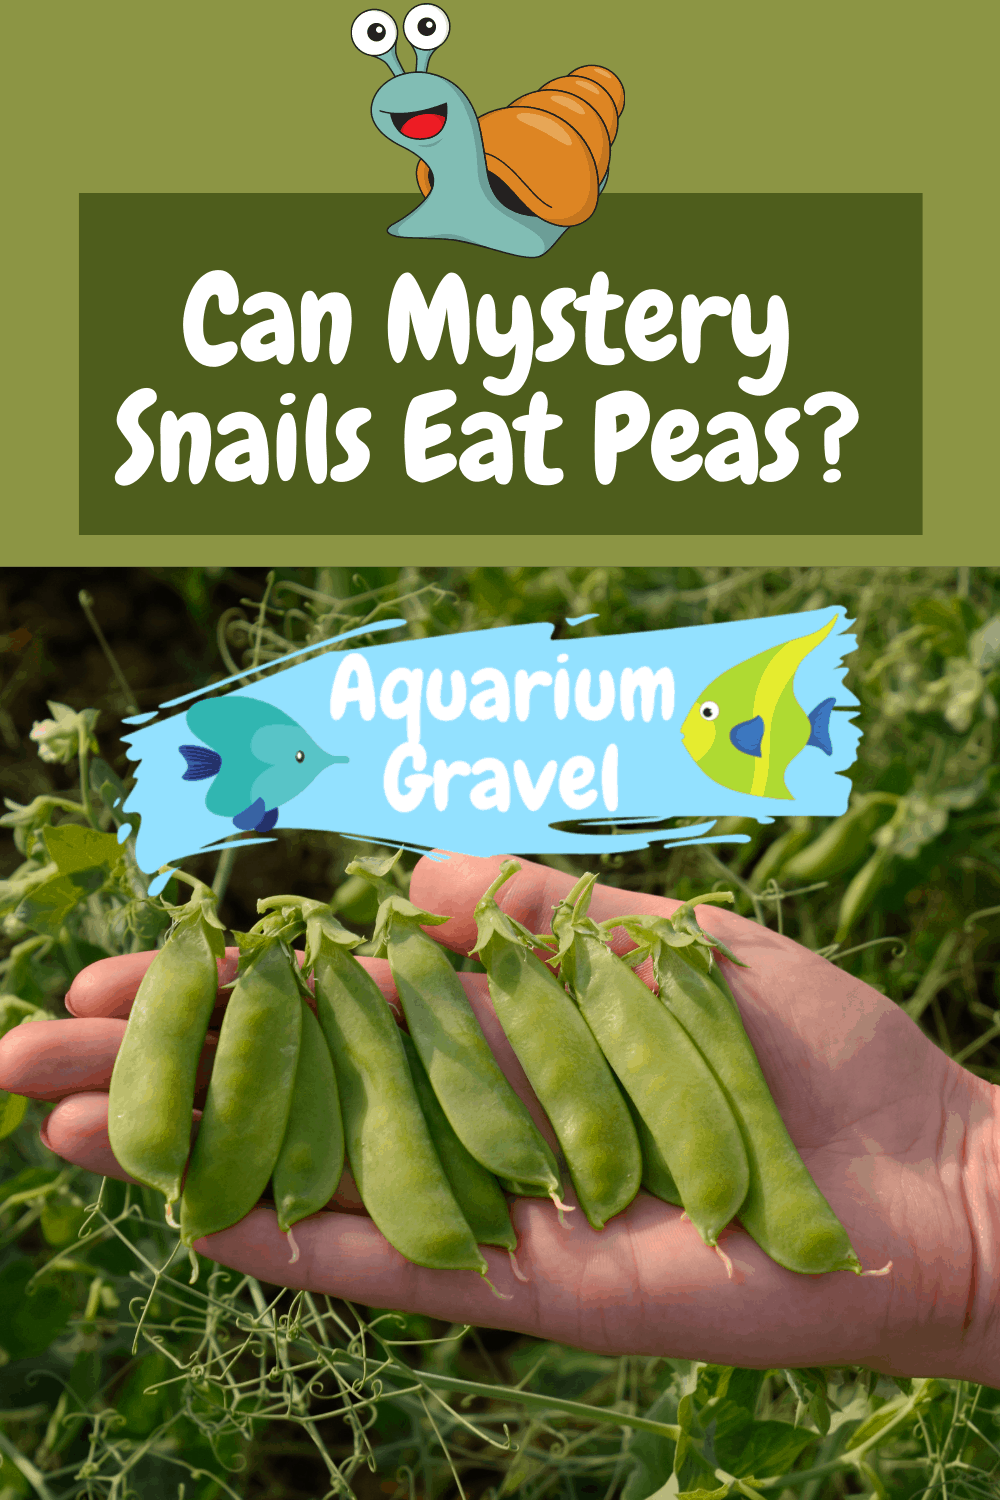 Can Mystery Snails Eat Peas